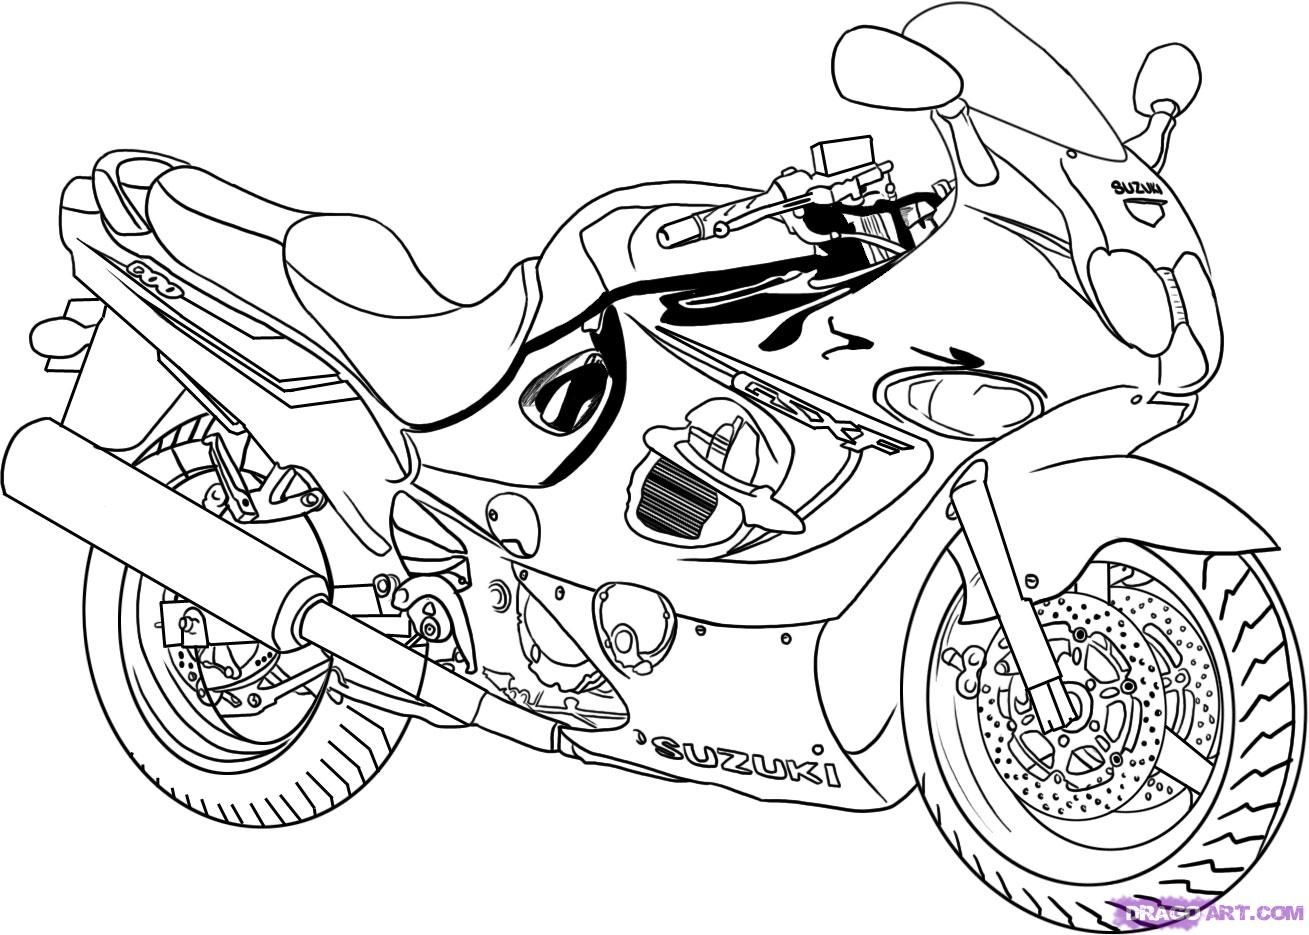 tattoo coloring pages how to draw a sport bike 2006 suzuki katana 600 step 6 coloring pages. Black Bedroom Furniture Sets. Home Design Ideas